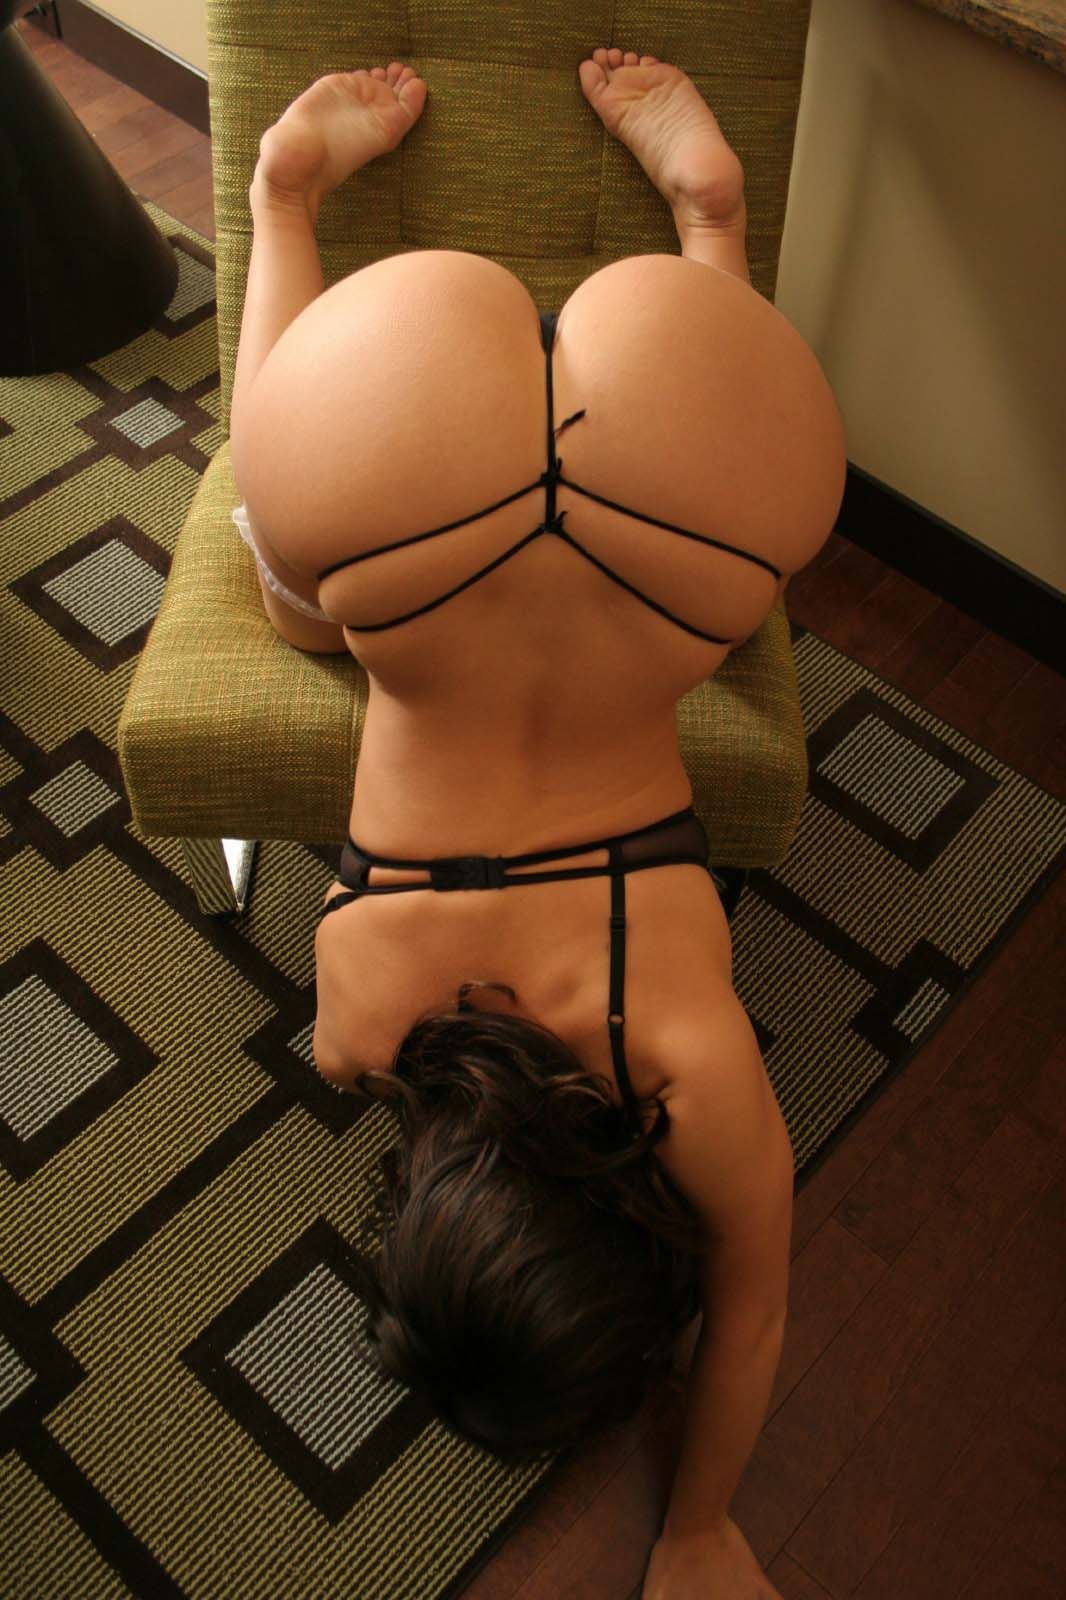 hot girl naked ass bang upside down